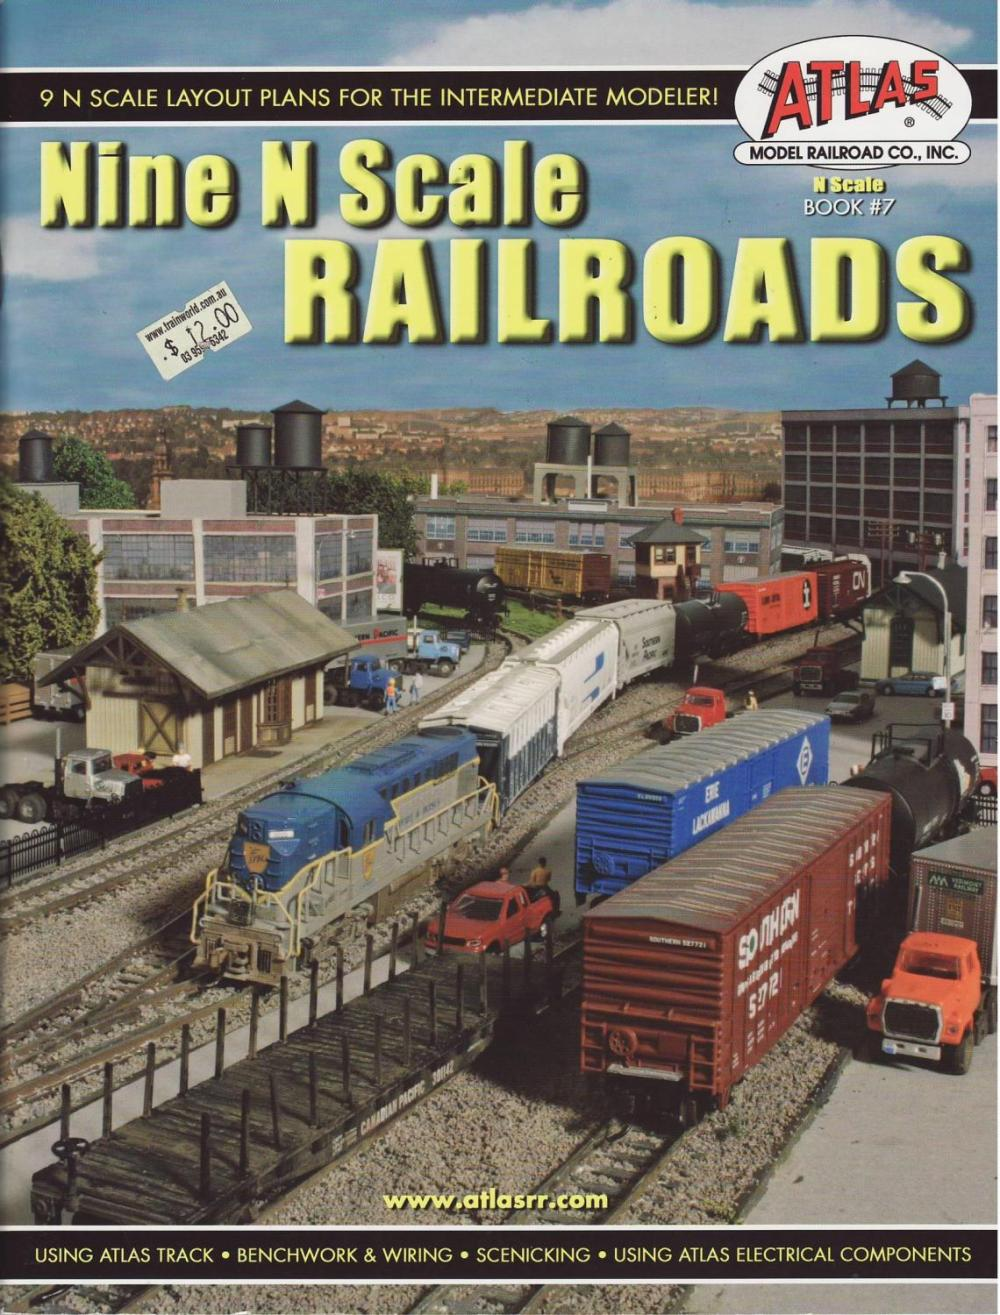 medium resolution of nine n scale railroads 9 n scale layout plans for the intermediate modeler not